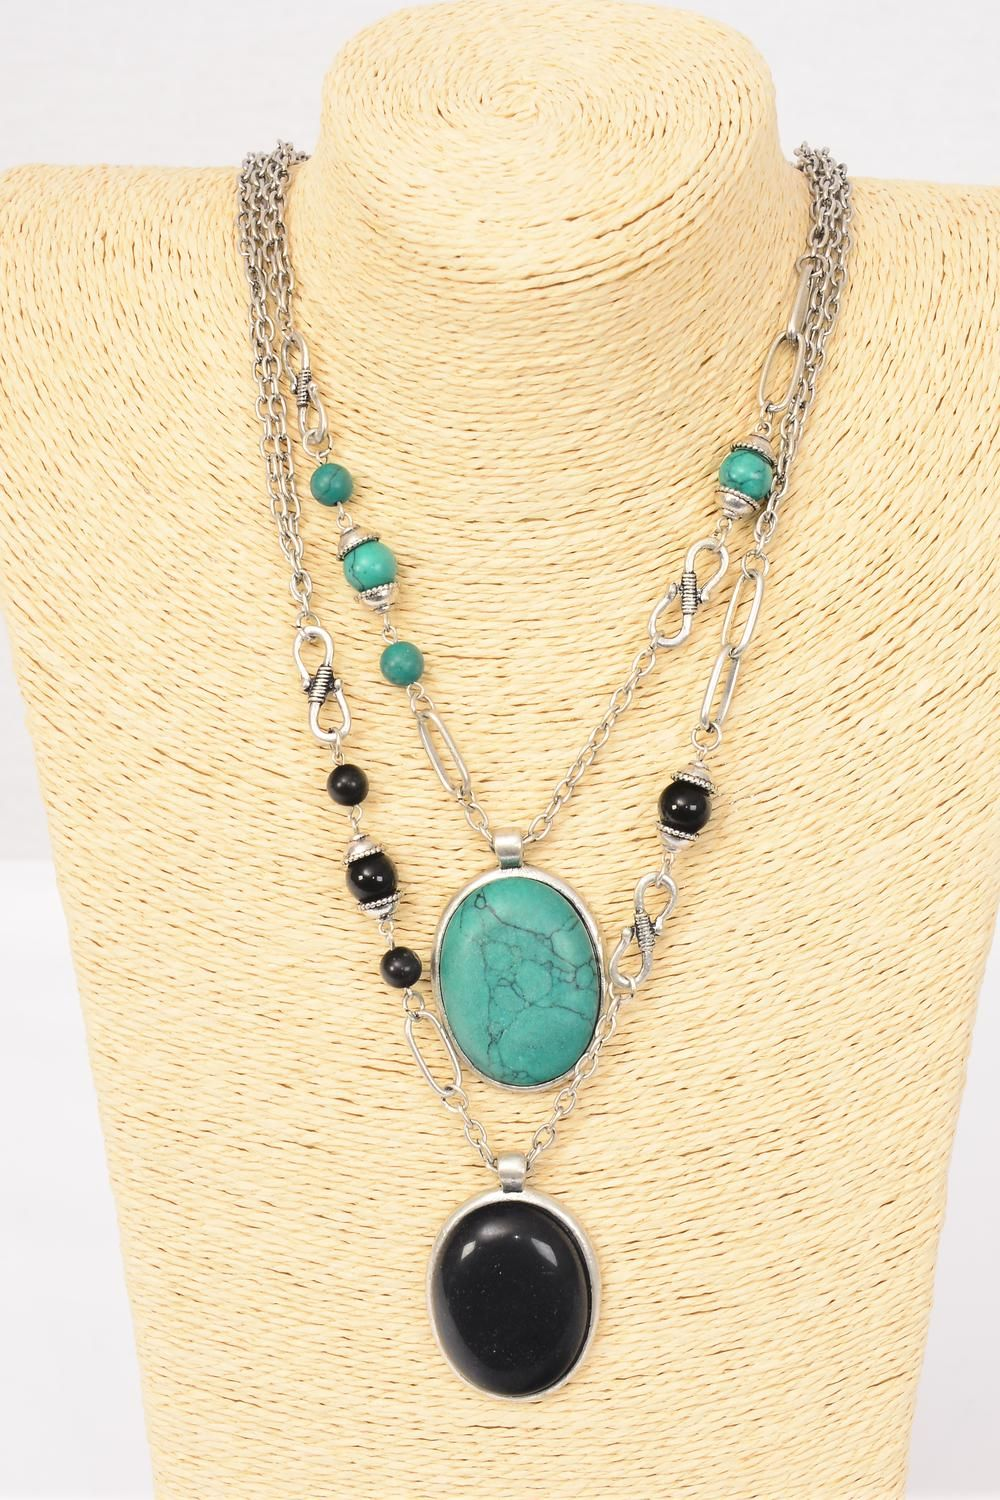 "Necklace Fancy Chain Semiprecious Stone & Pendant/PC Pendant Size-1.75""x 1.25"" Wide,30"" Long,Display Card & OPP Bag & UPC Code,Choose Colors"